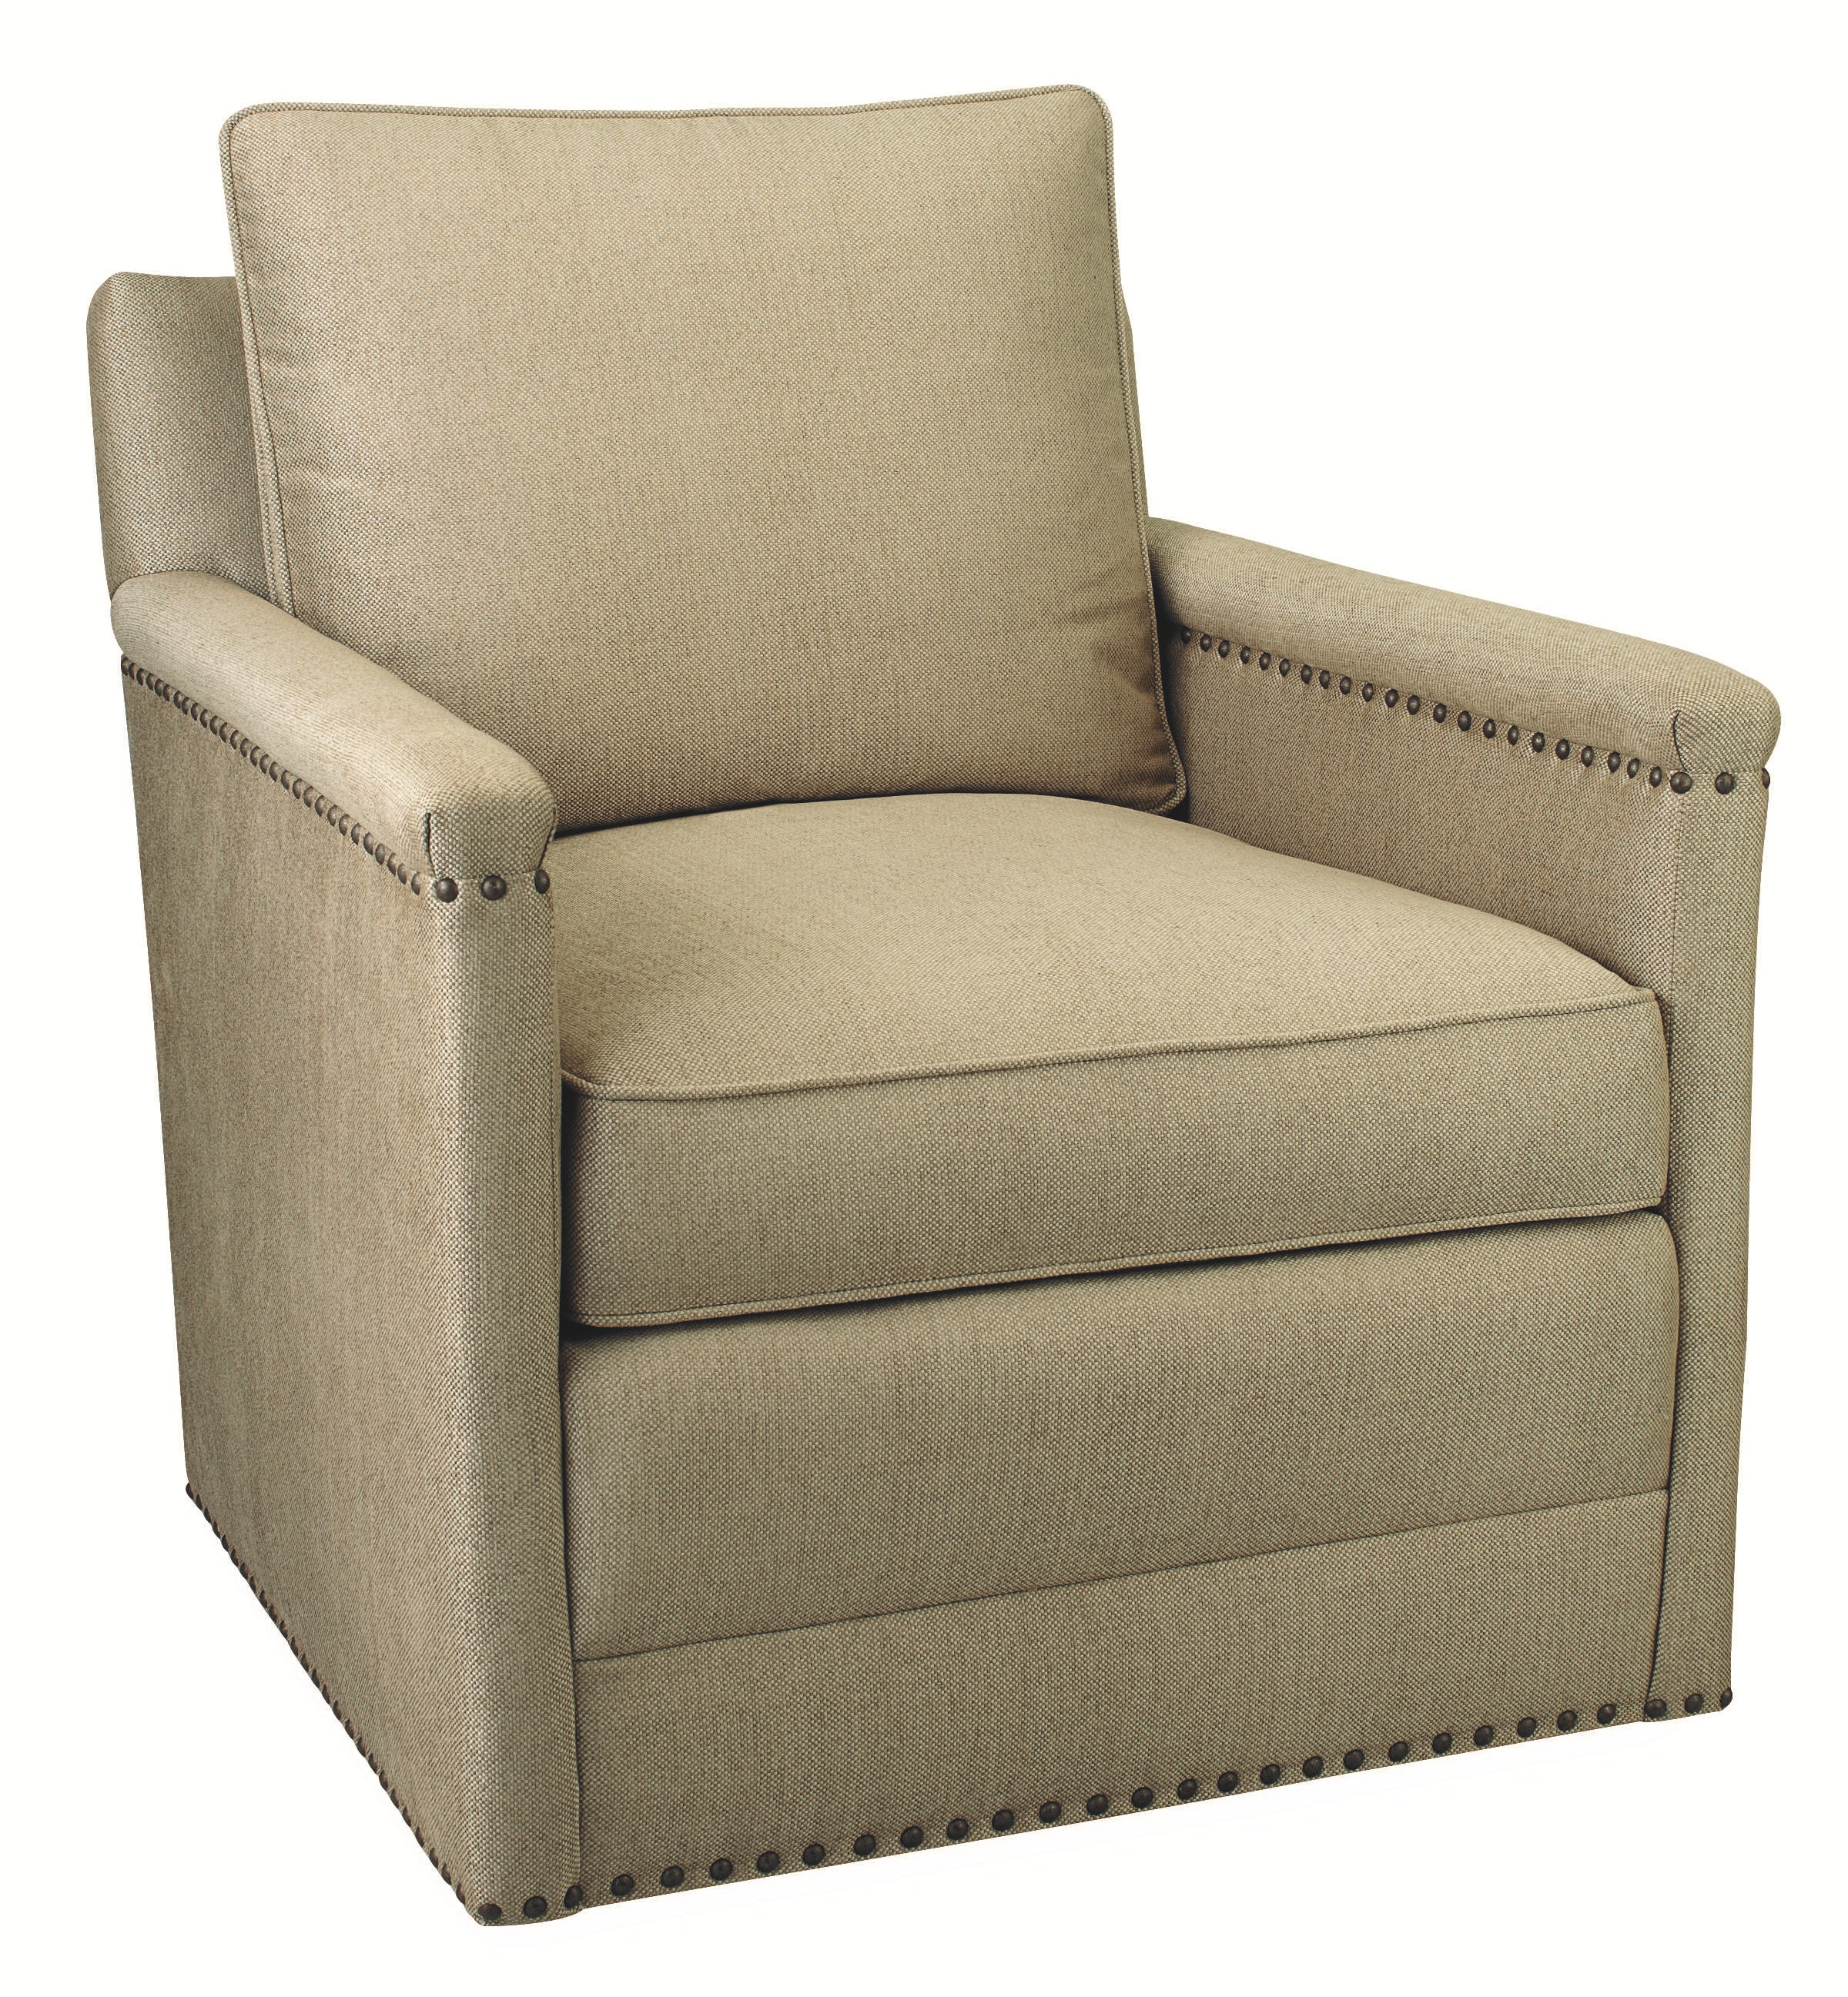 Lee Industries Swivel Chair 1935 01SW